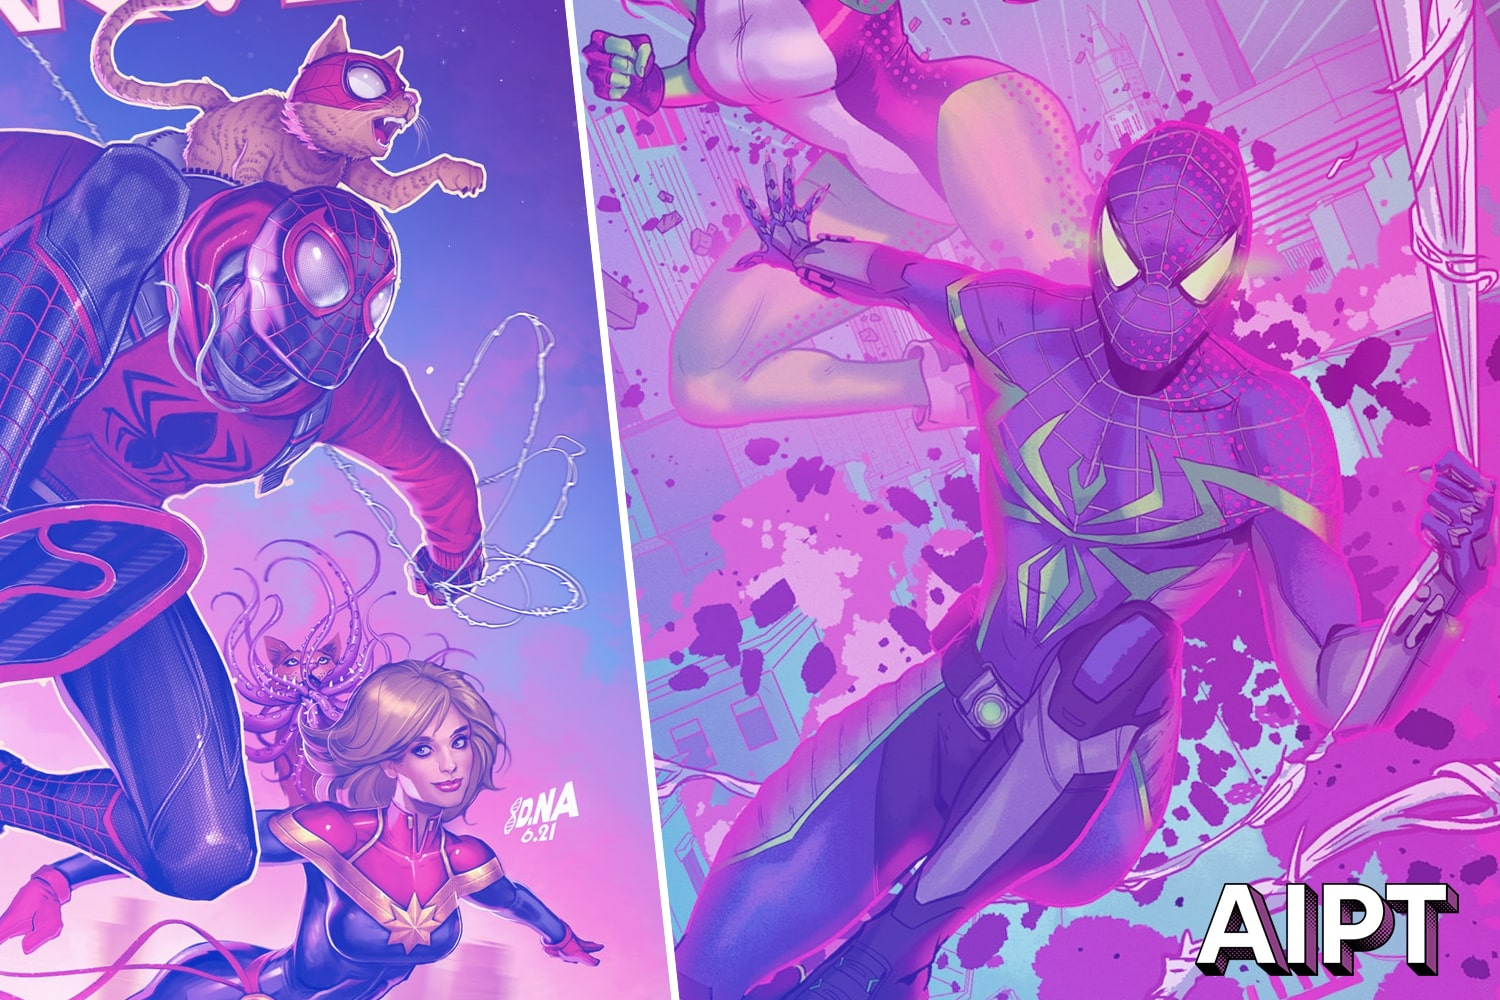 EXCLUSIVE Marvel First Look: 'Captain Marvel' and 'Avengers' Miles Morales 10th anniversary covers